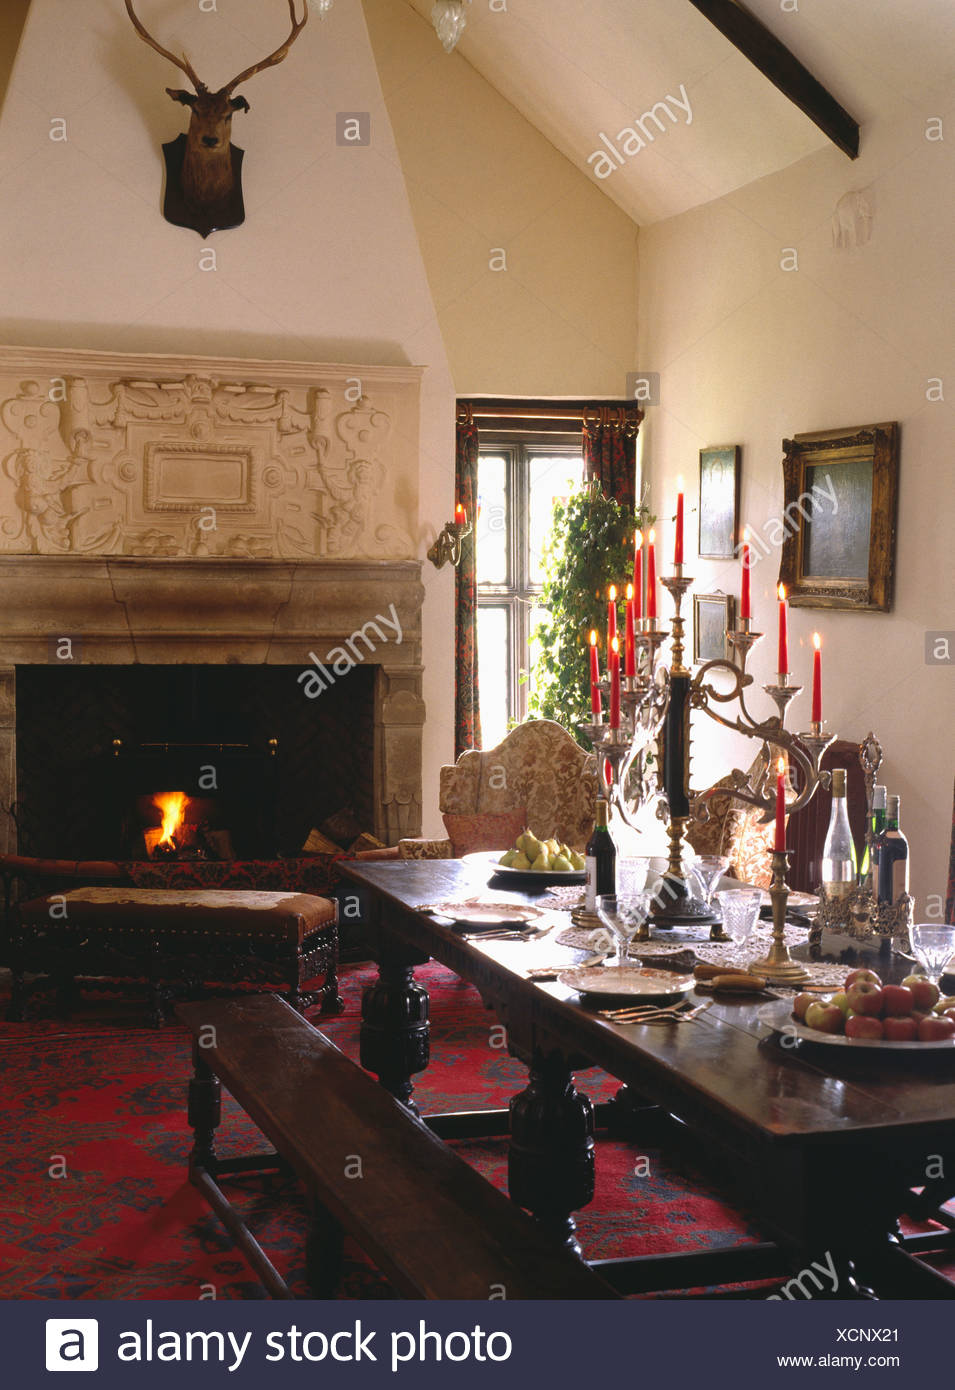 ornate overmantel on jacobean fireplace with fire lit in dining hall with oak table and benches XCNX21